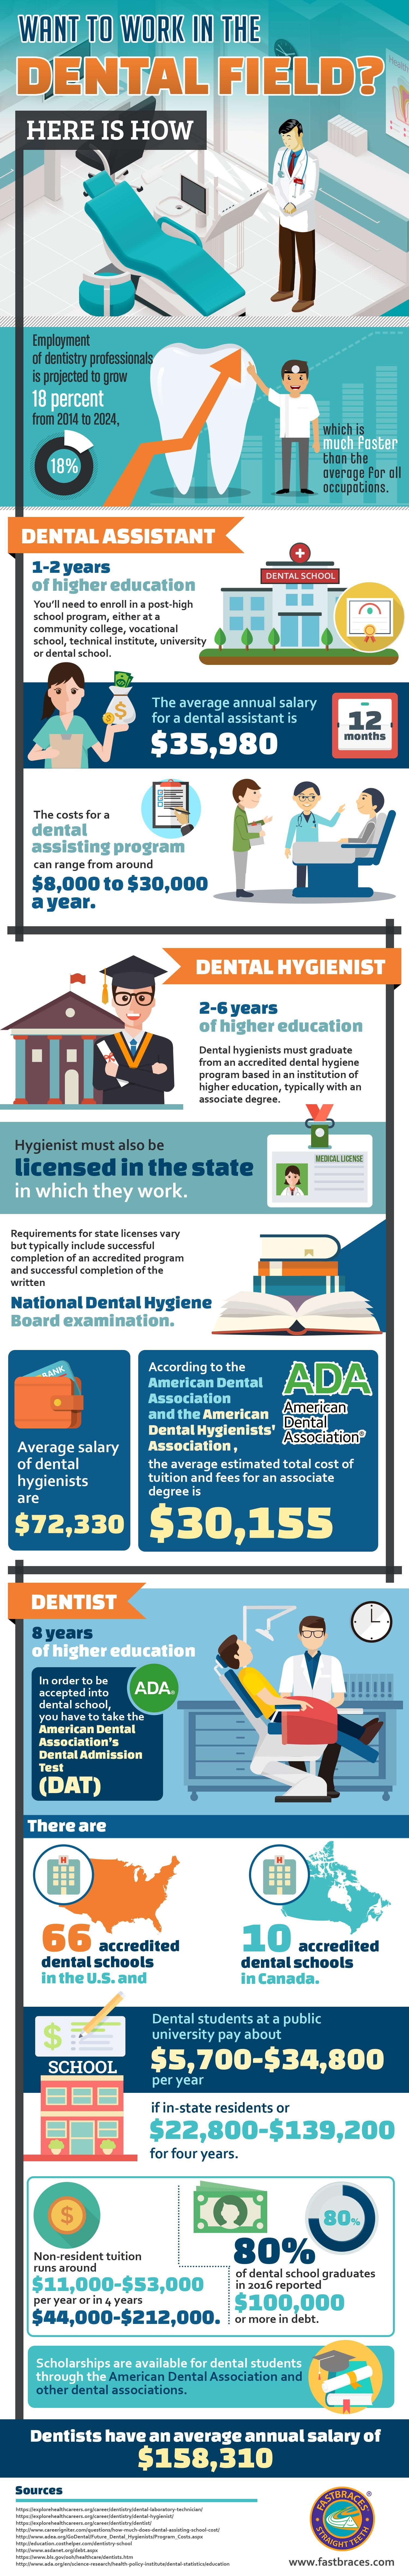 Want to Work in the Dental Field? Here is How